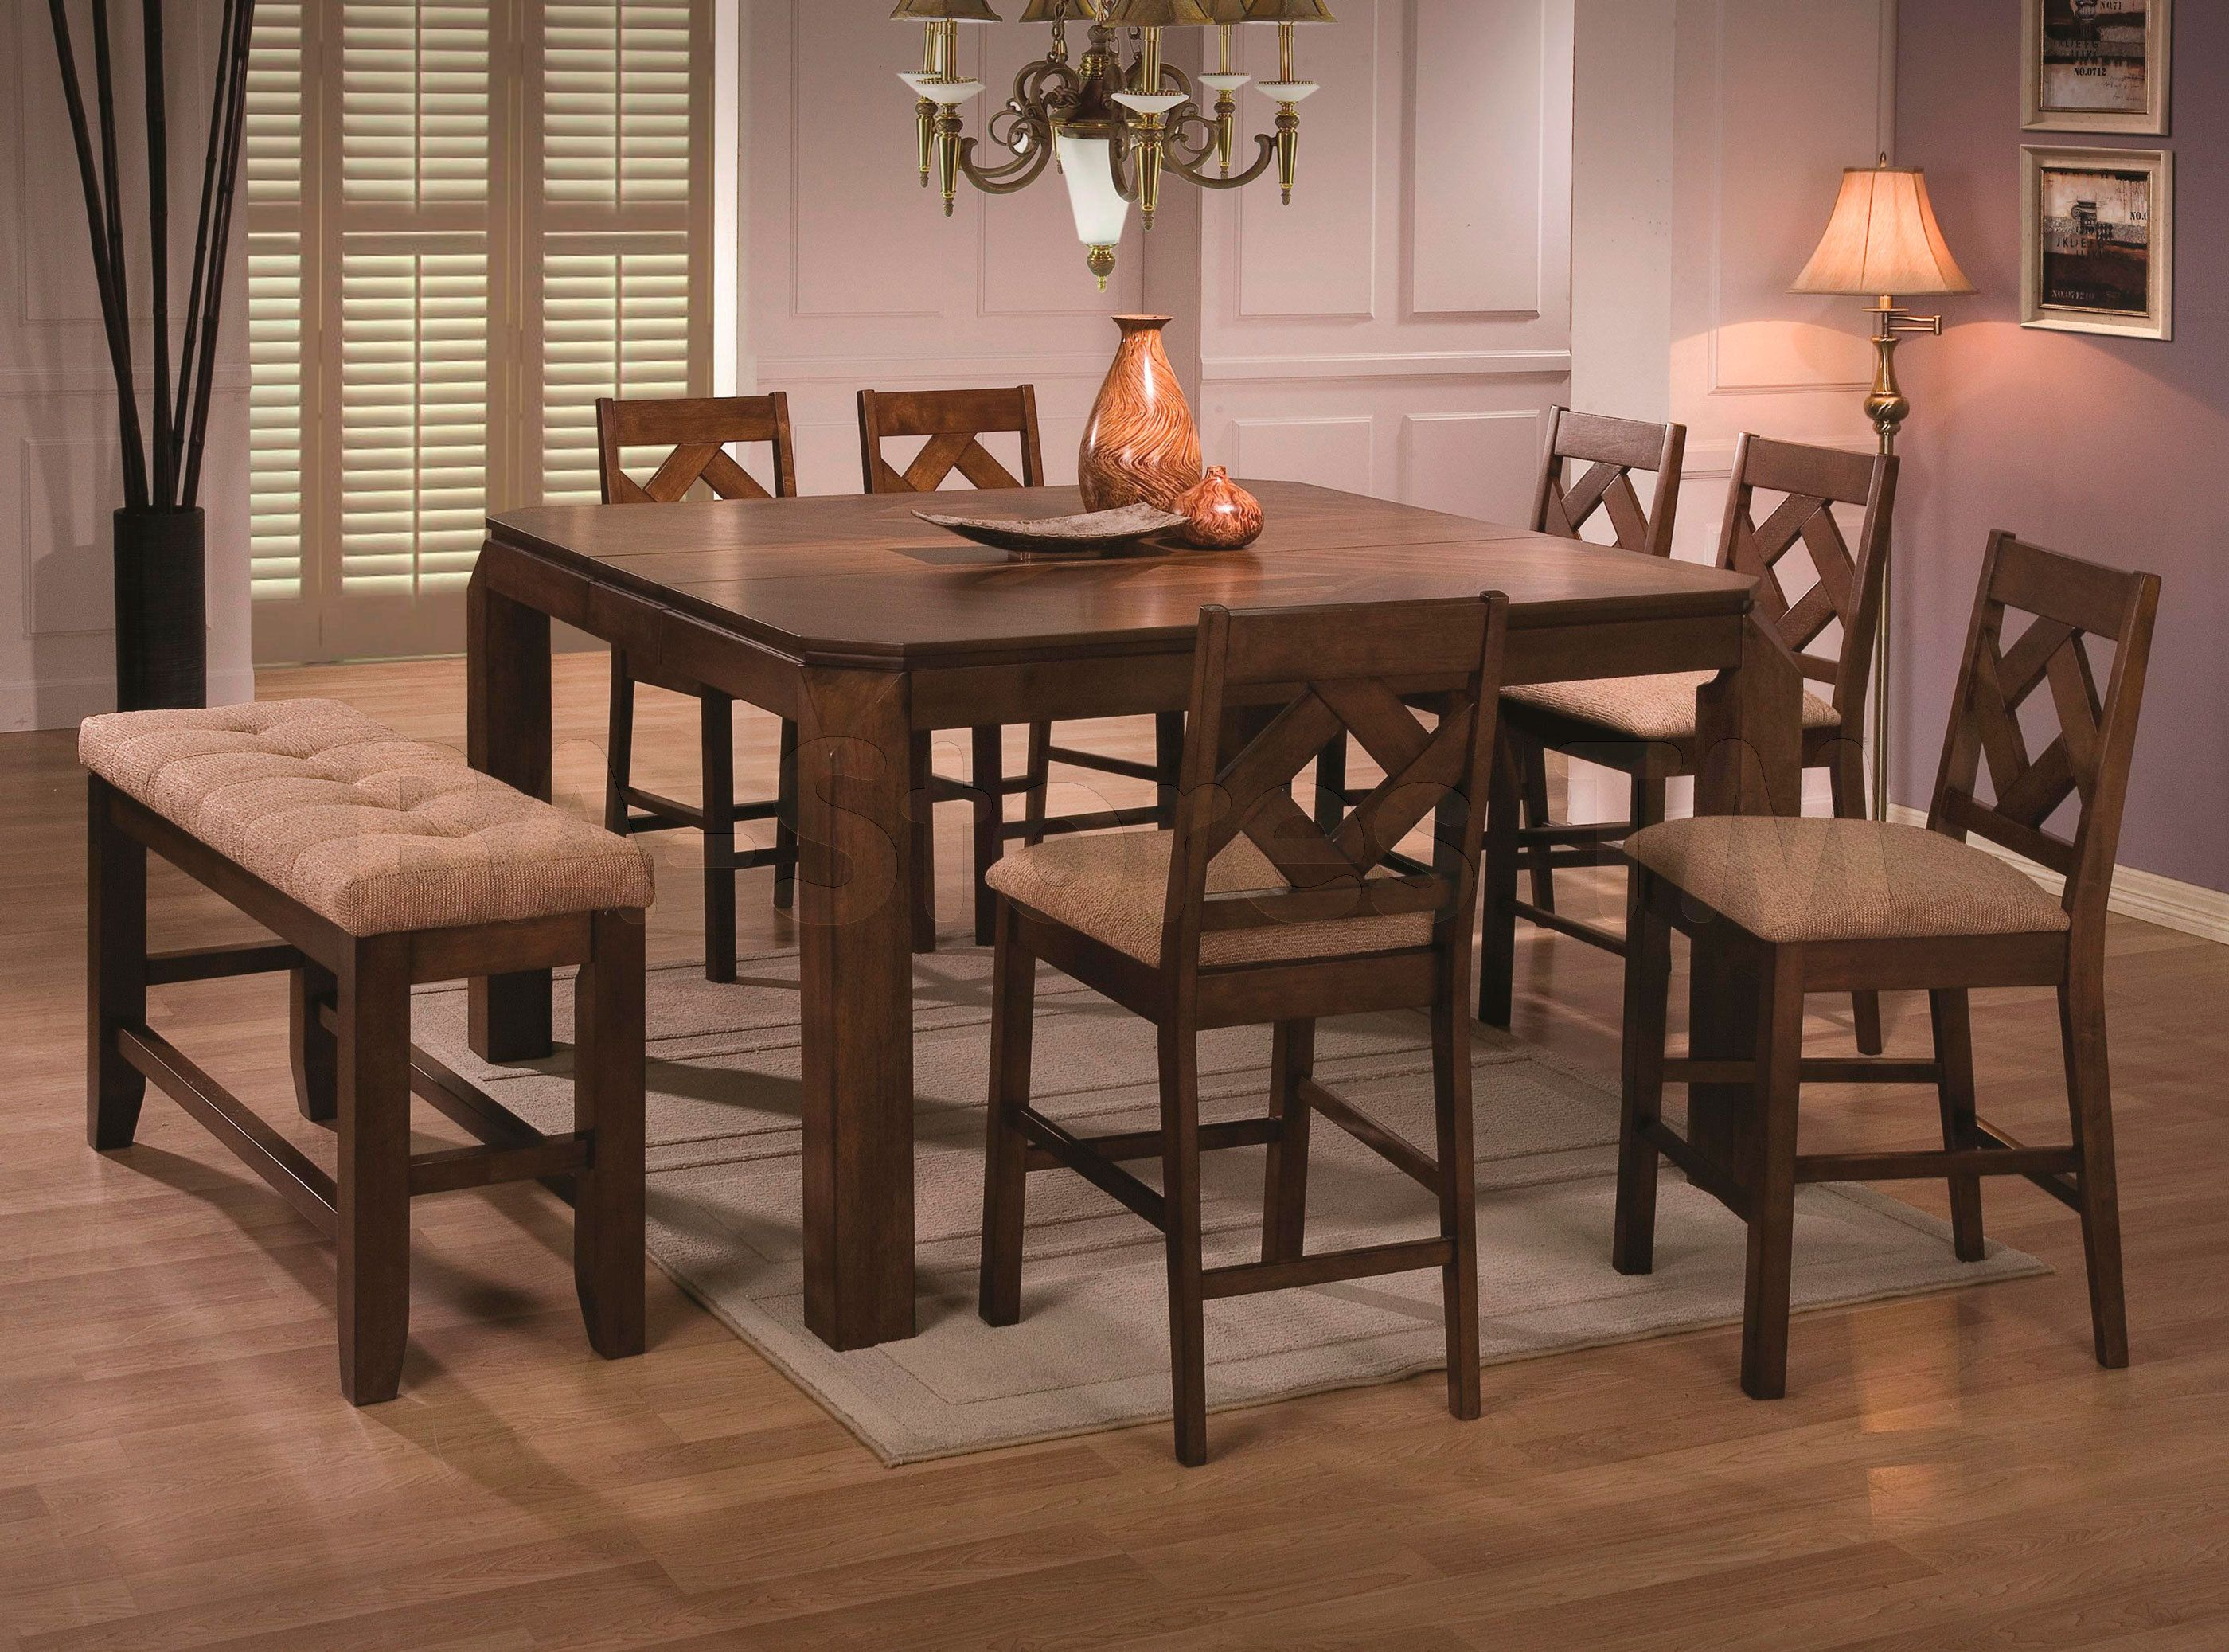 Antoine 6 Pc Counter Height Set Table Bench And 4 Chairs Enchanting 8 Pc Dining Room Set Decorating Design